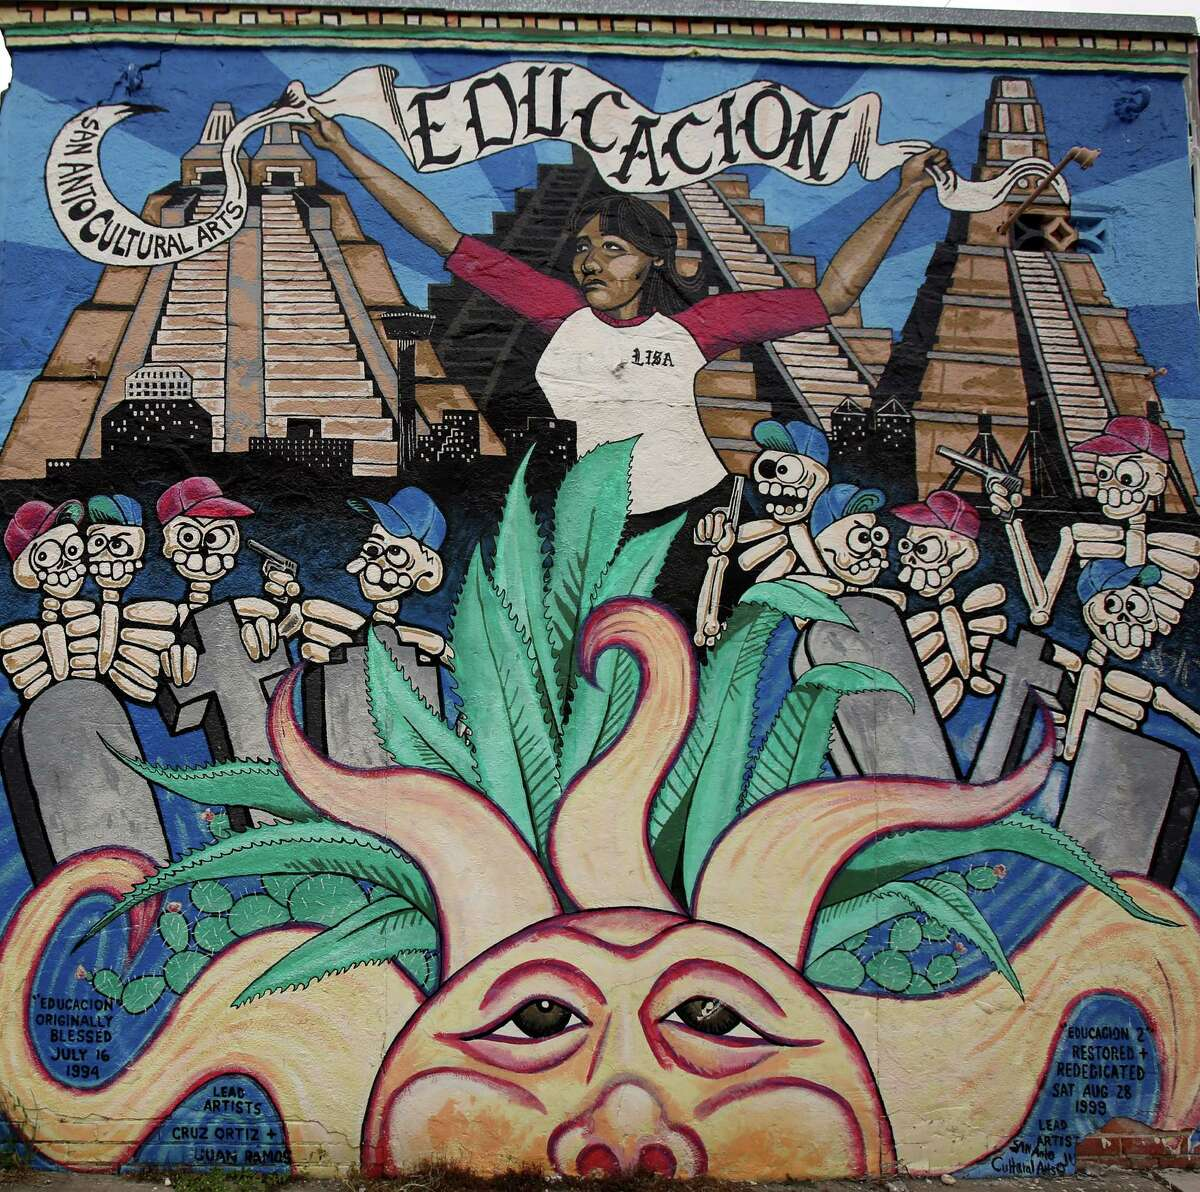 2. Tour the West Side murals. If you don't have time to see all 50 of them, Denise Richter lists her favorite five on her blog sanantonio.net.